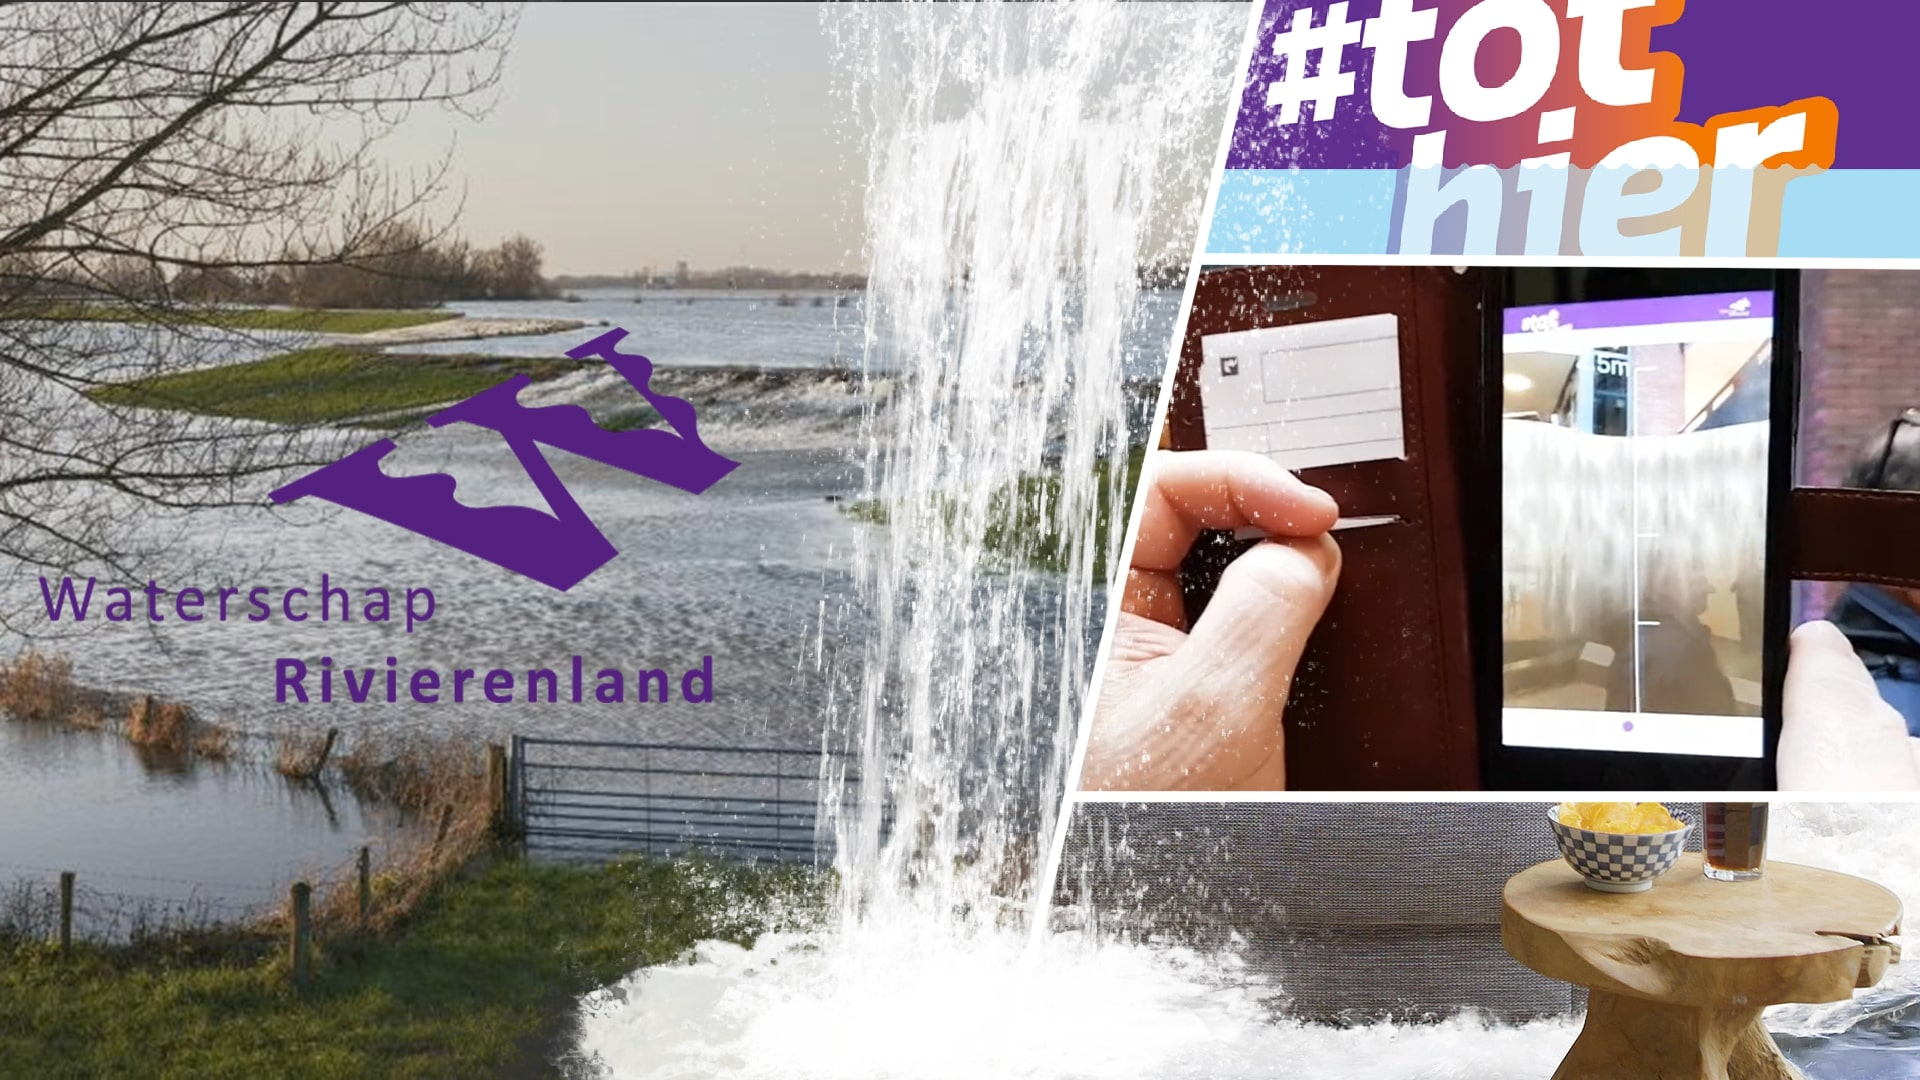 augmented reality cases (Waterschap Rivierenland light)